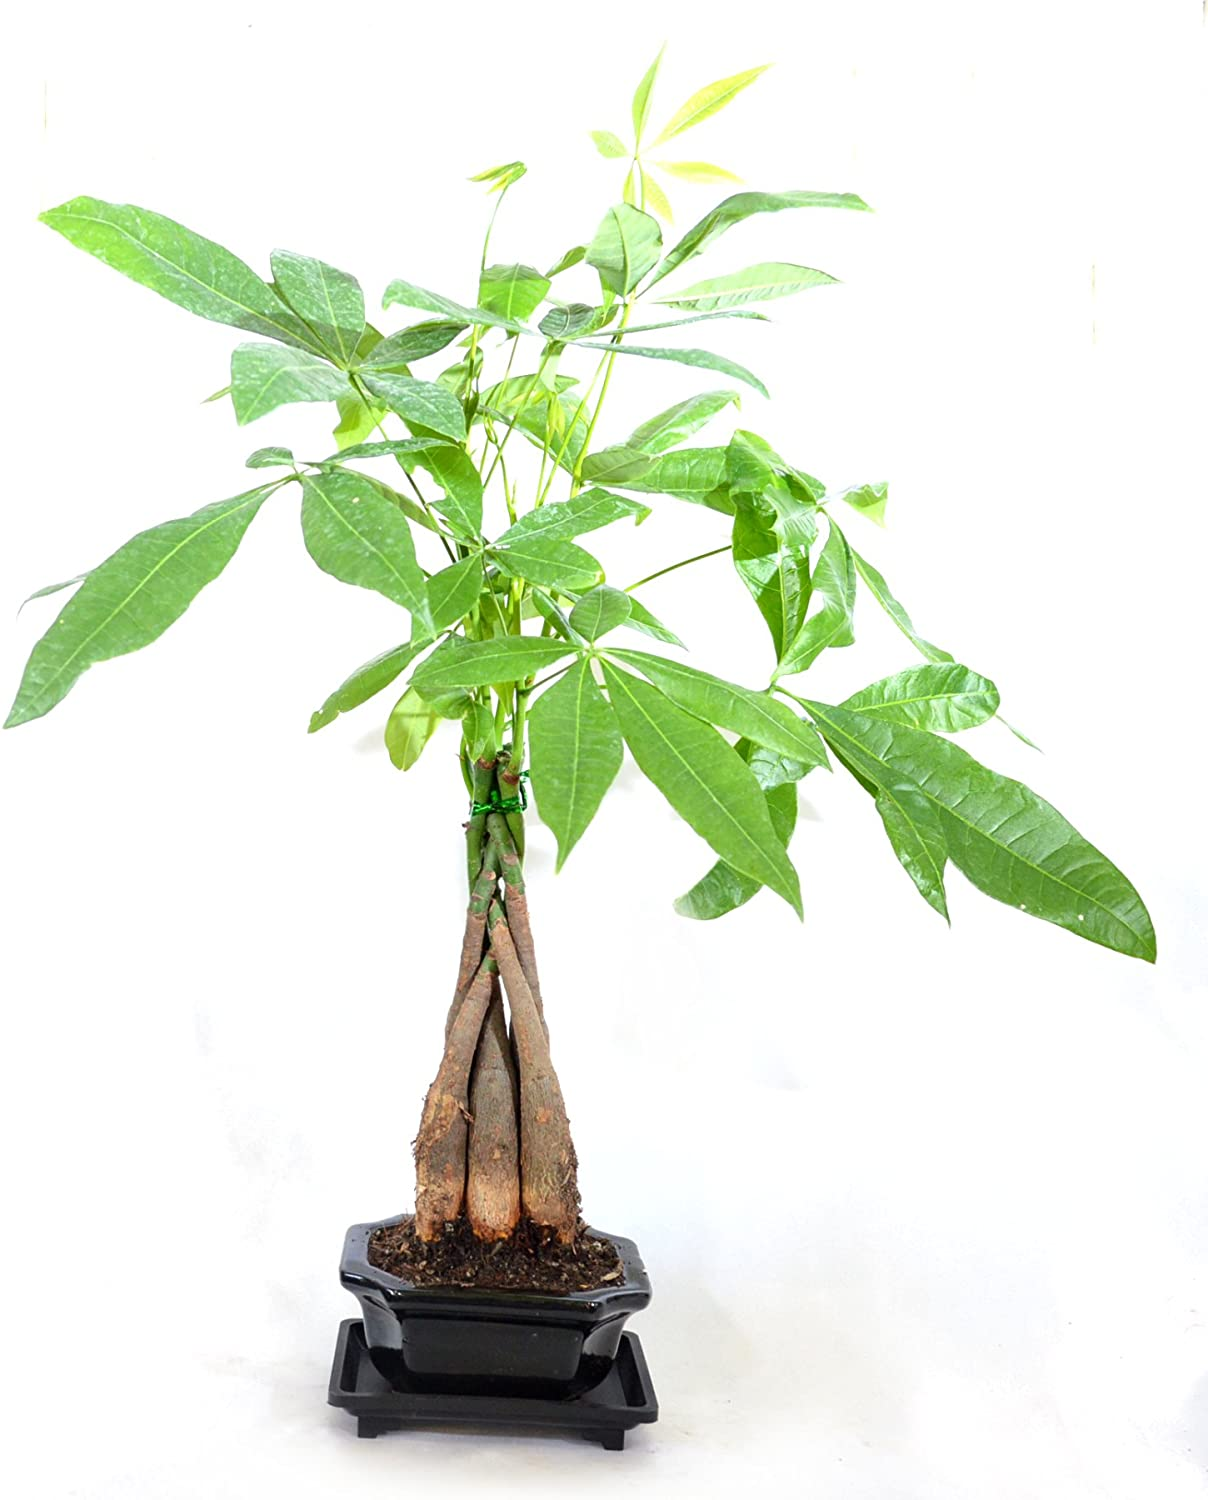 5 Braided Money Trees 9GreenBox Bonsai with Water Tray and Fertilizer